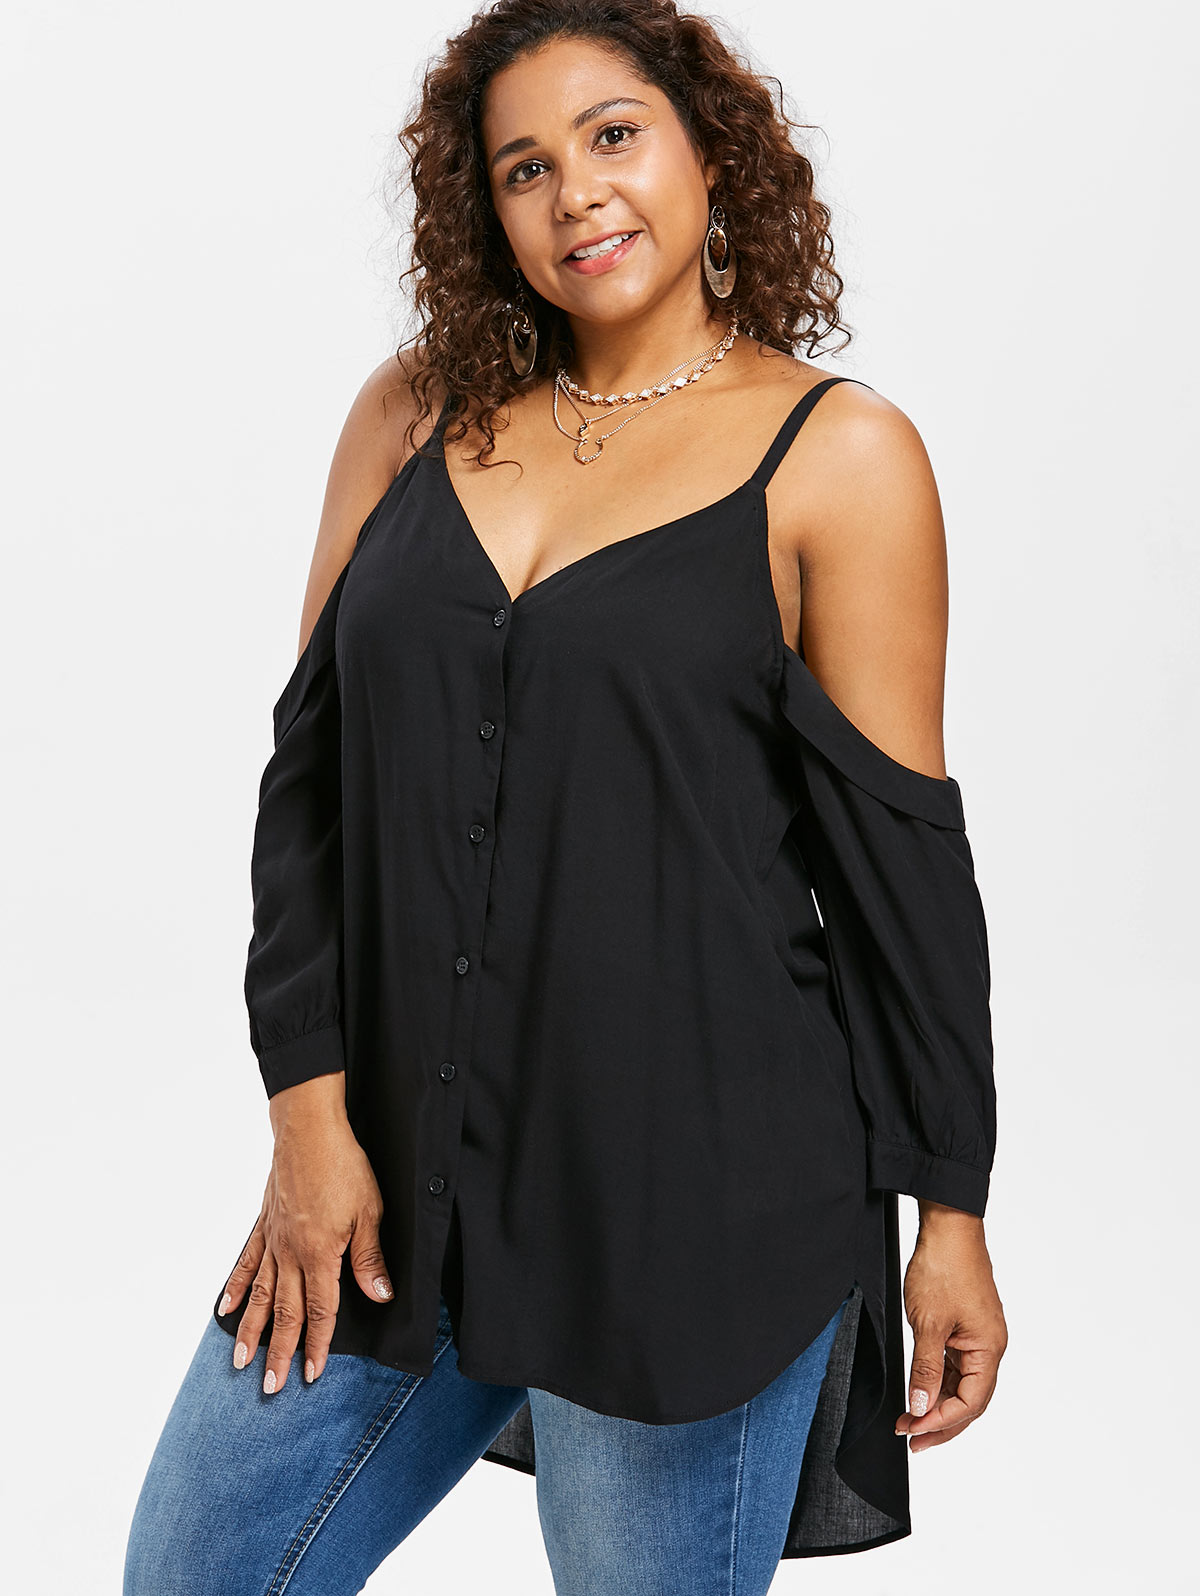 acb0475790a2f AZULINA Plus Size Button Up Cold Shoulder High Low Tunic Top Women T Shirt  Autumn Black V Neck Long Sleeve T Shirt Ladies Tops-in T-Shirts from Women s  ...